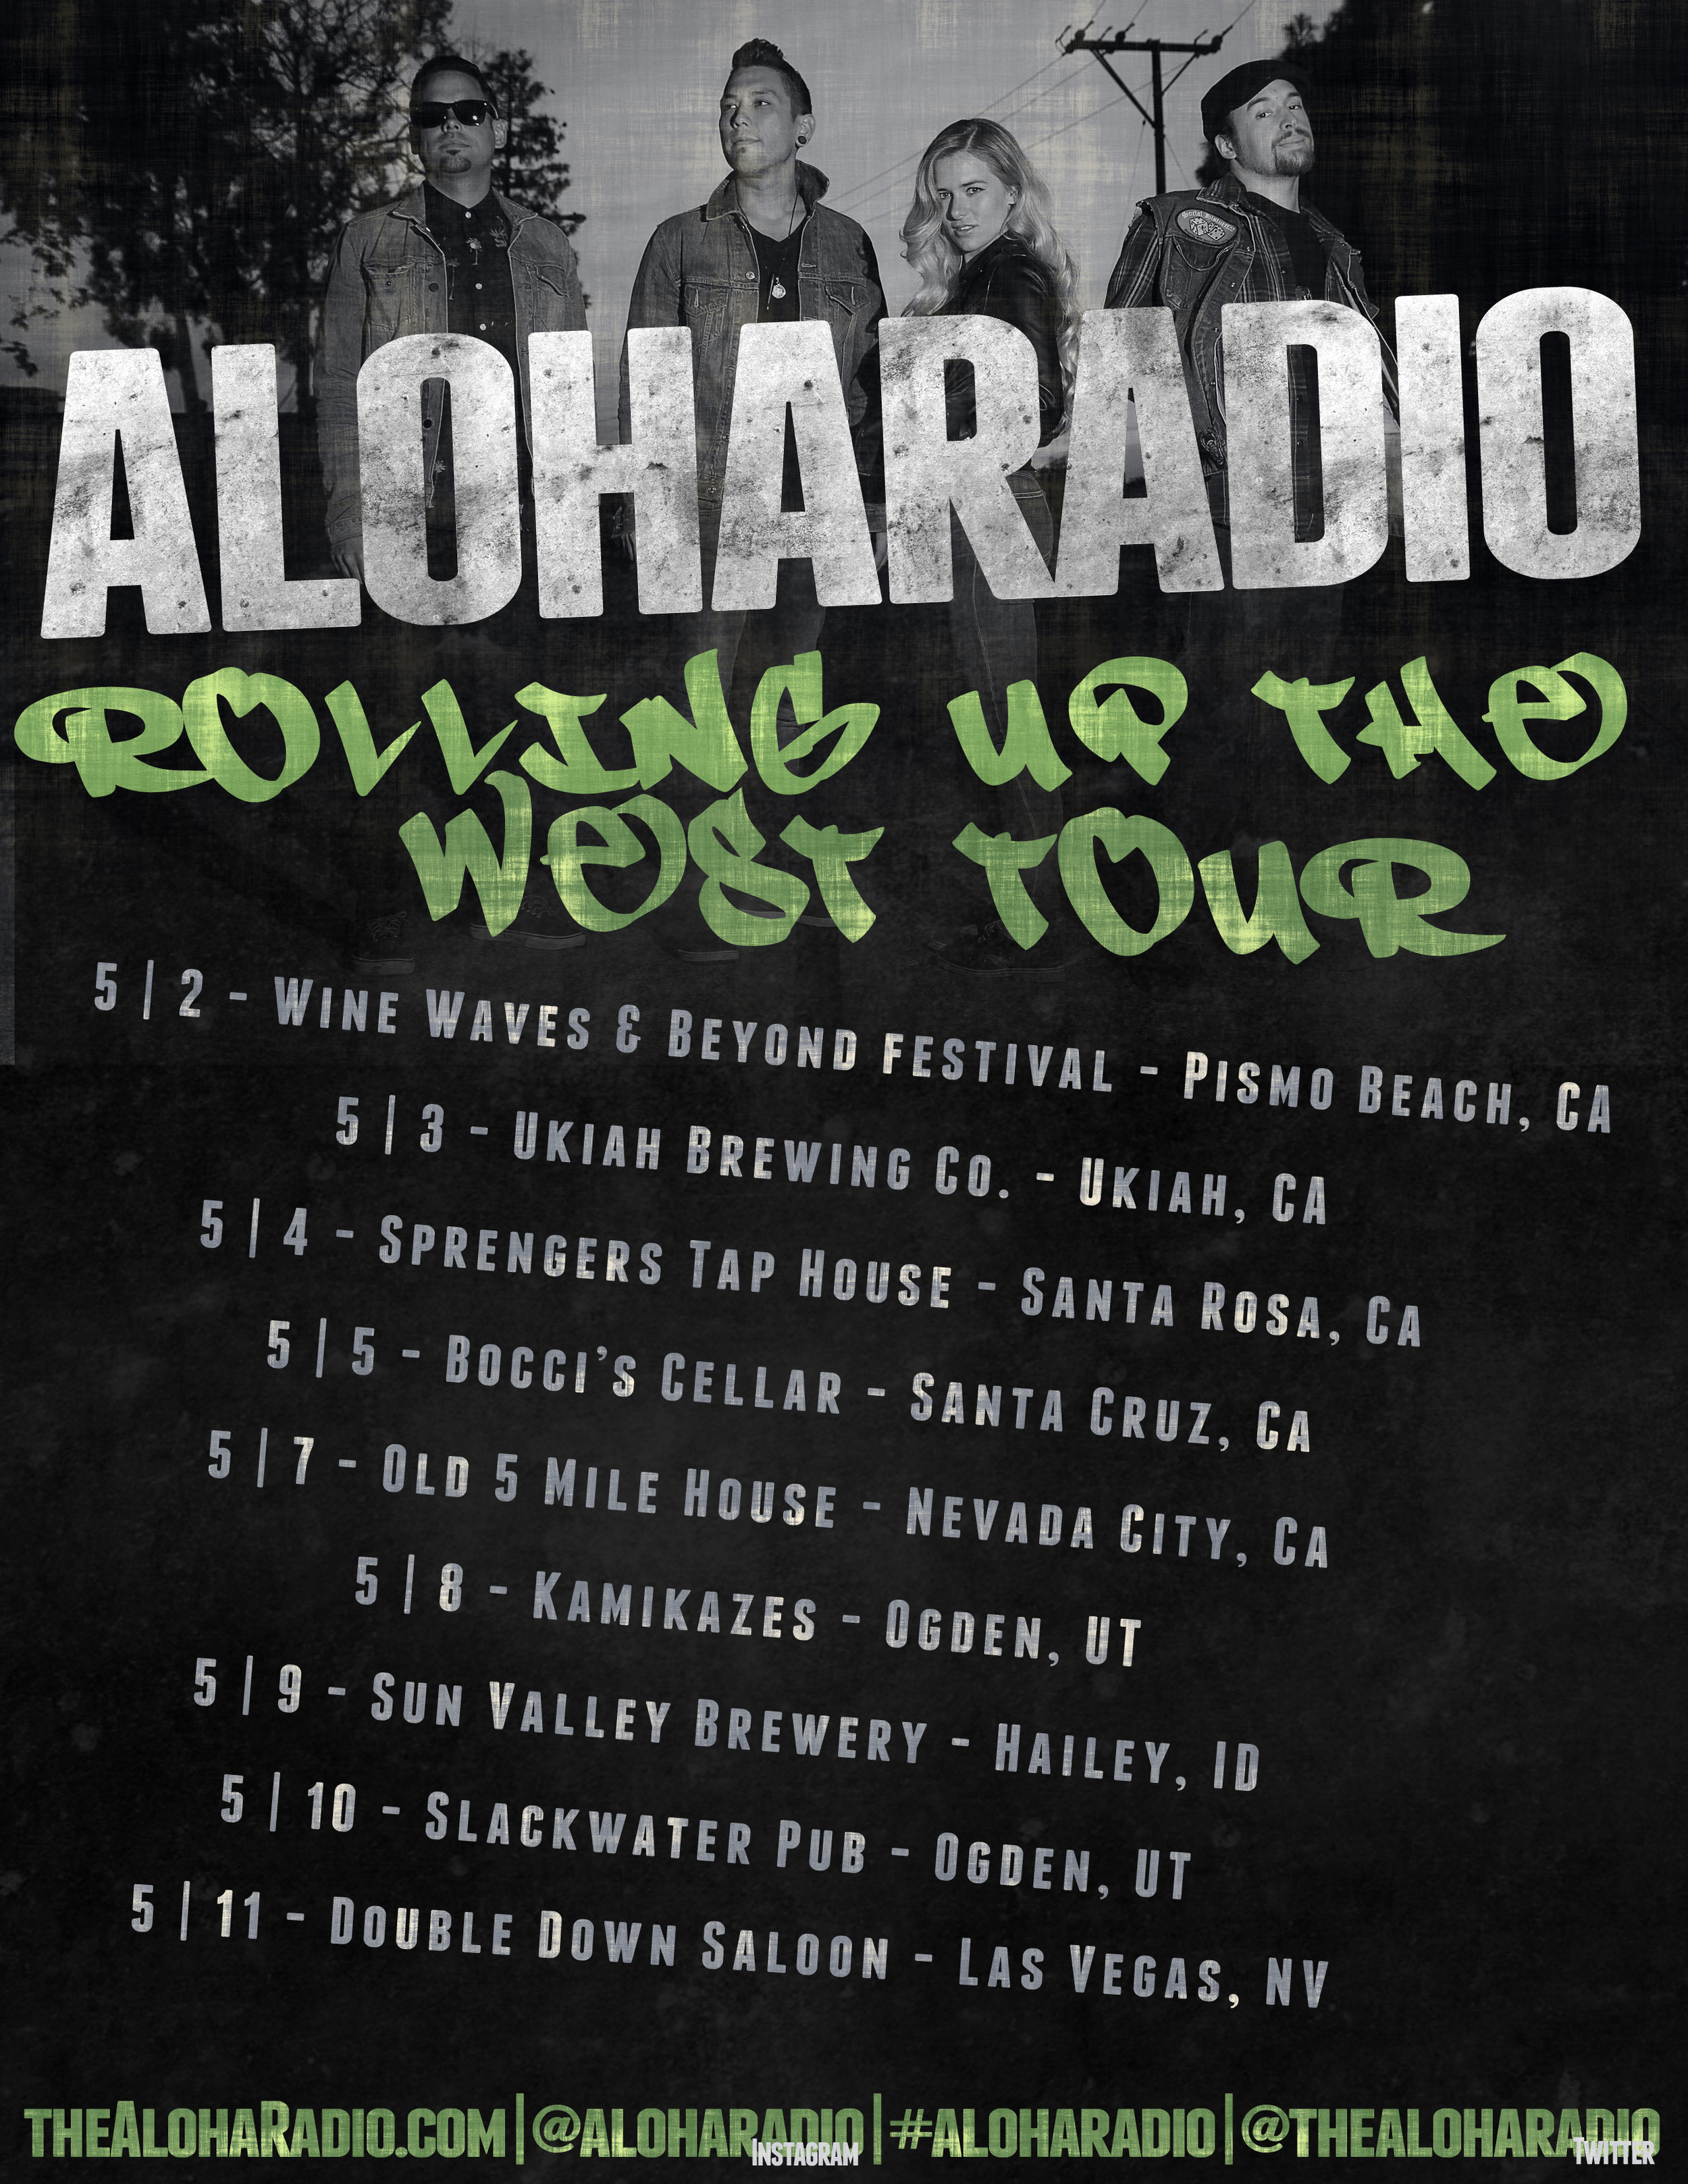 Aloha Radio -Rolling Up the West Tour - Las Vegas Date Added